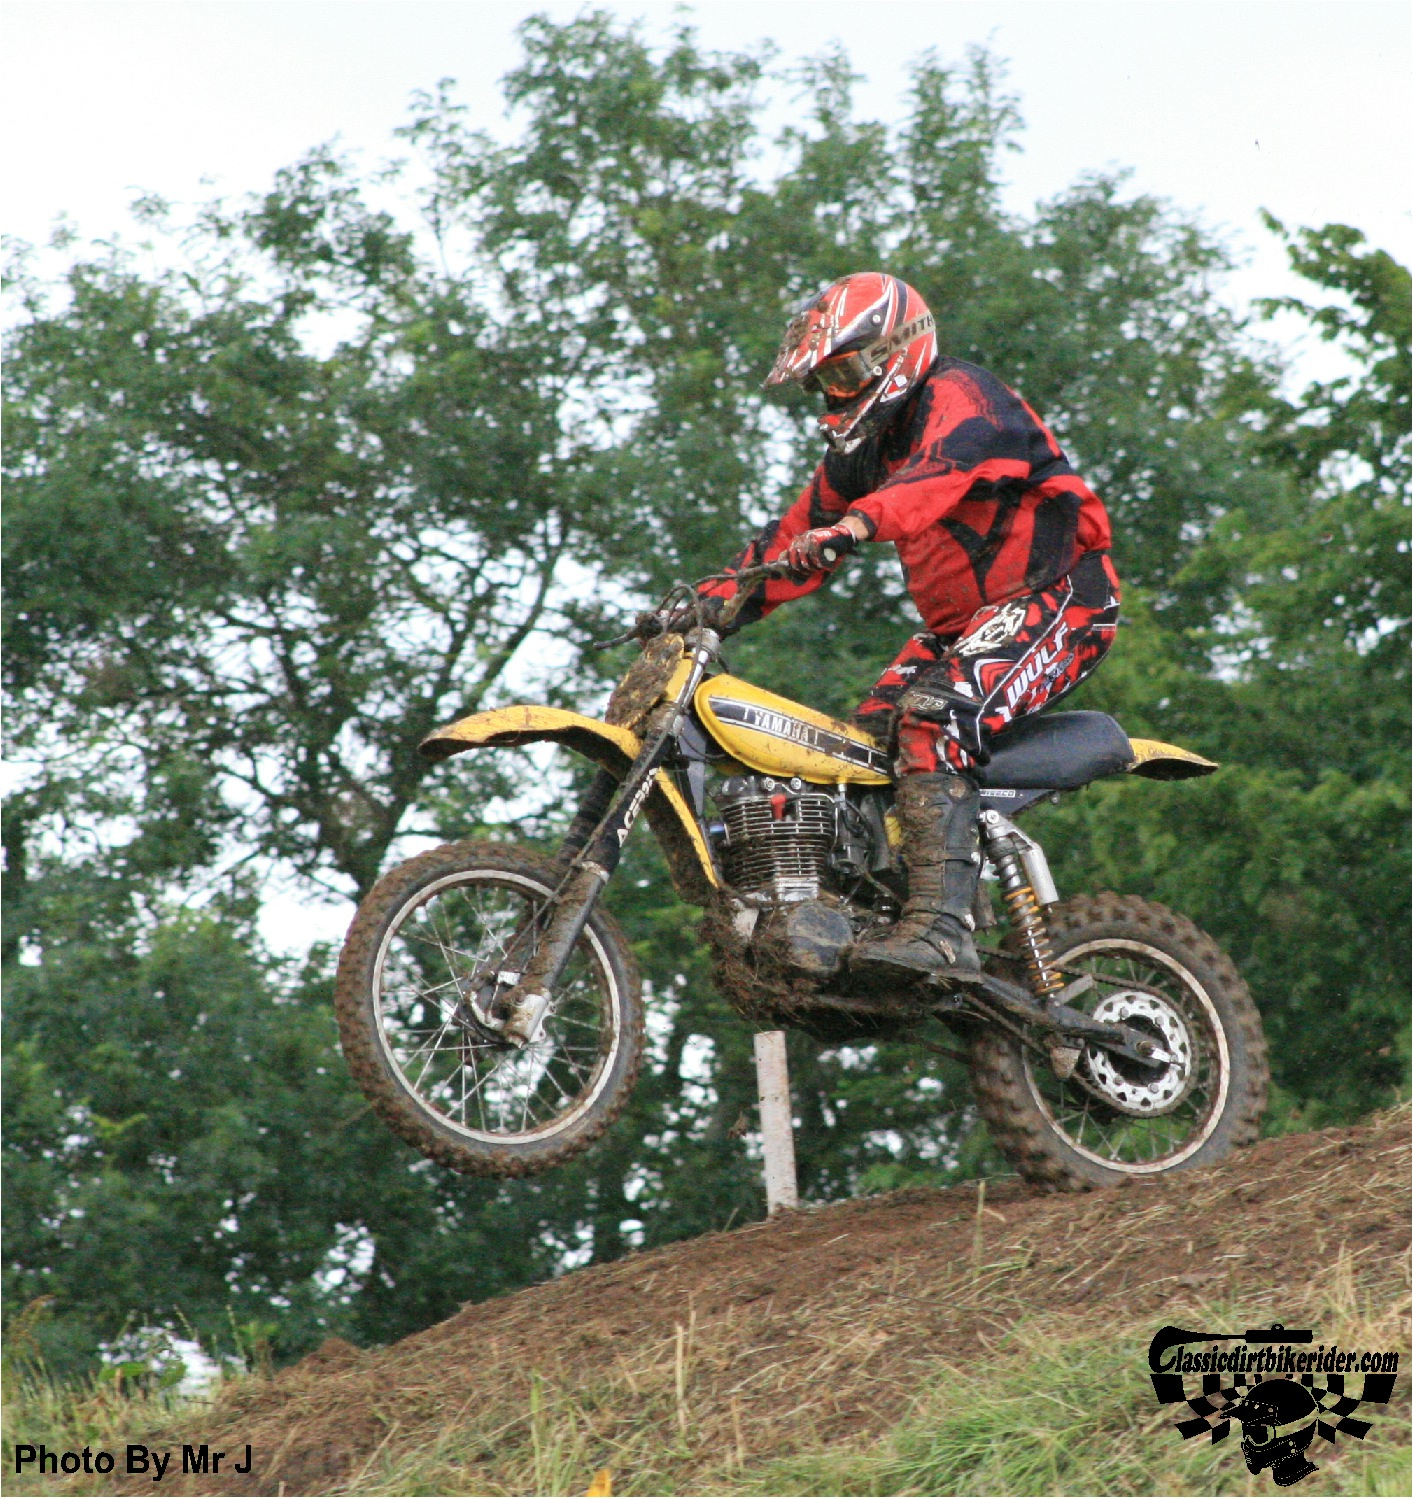 king of the castle 2015 photos Farleigh Castle twinshock motocross classicdirtbikerider.com 113